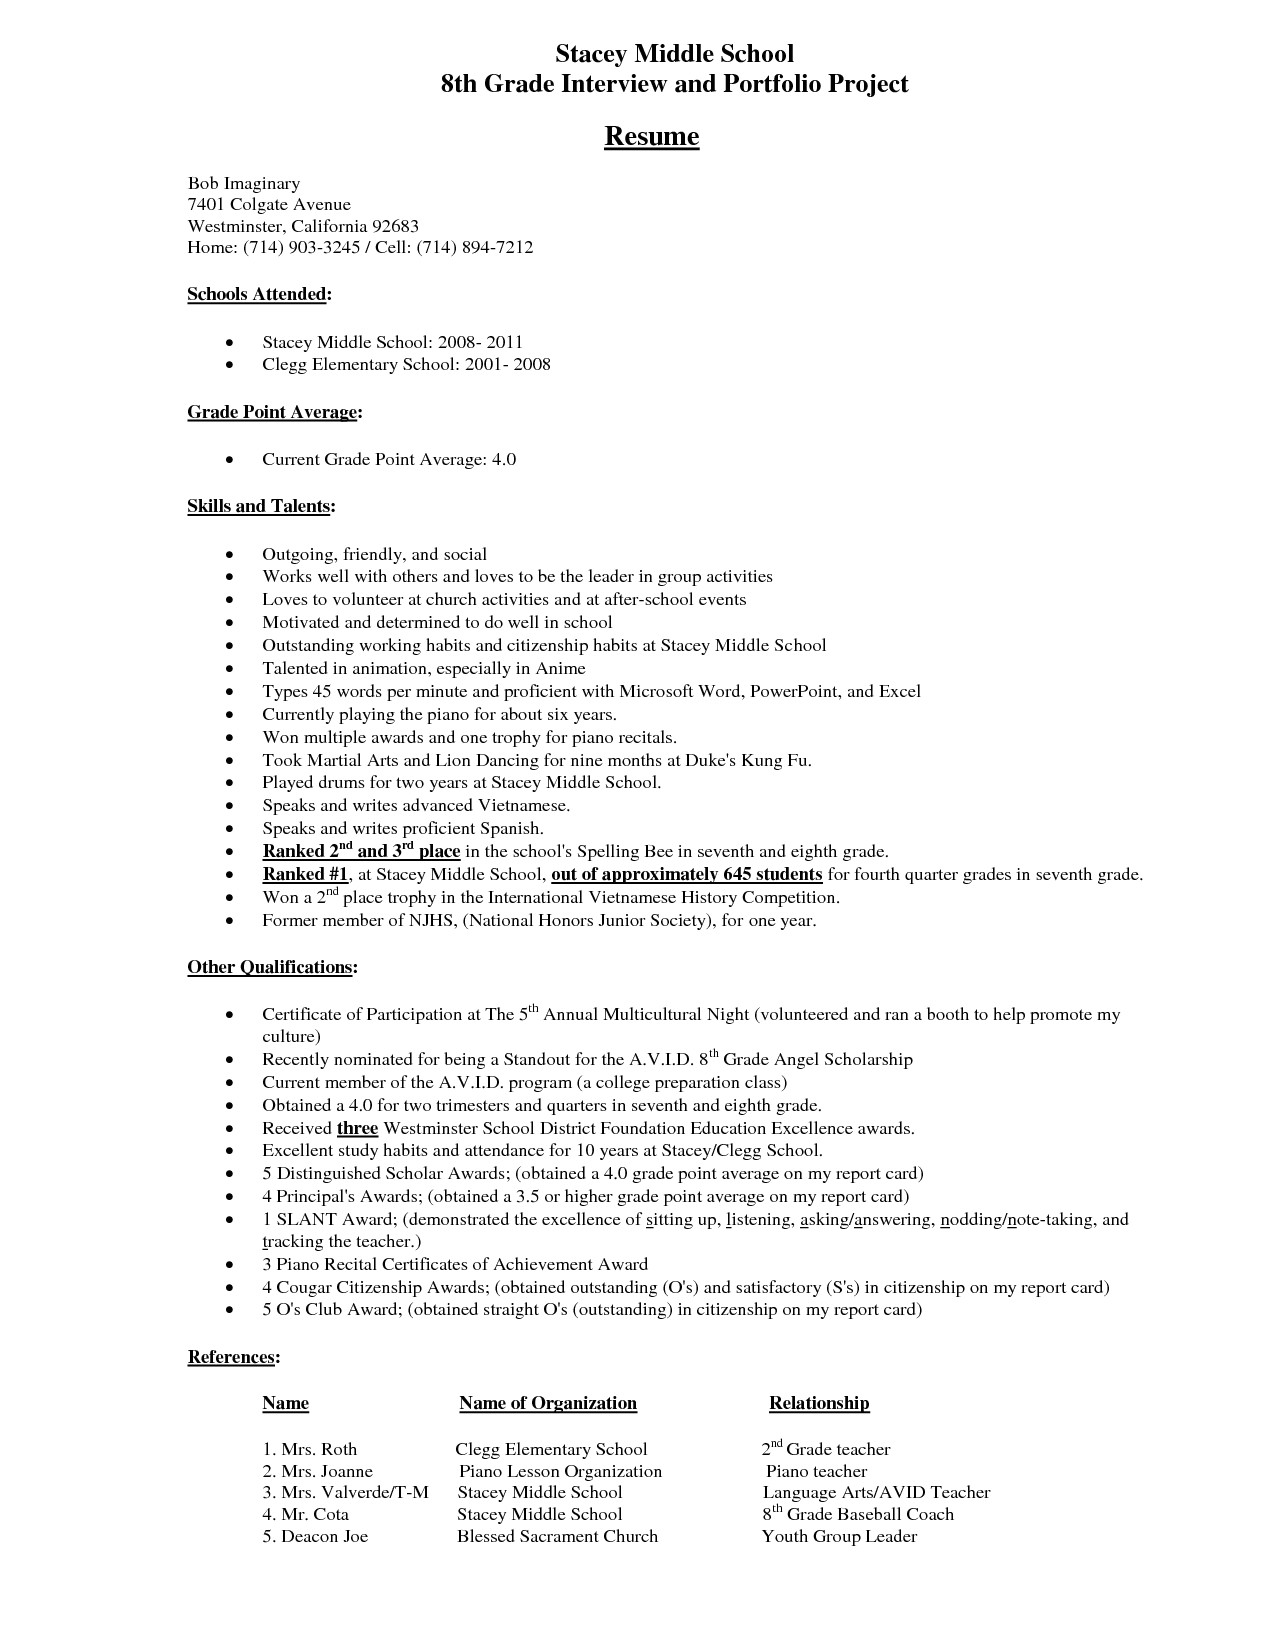 Middle School Student Resume Middle School Student Resume Example Stacey Middle